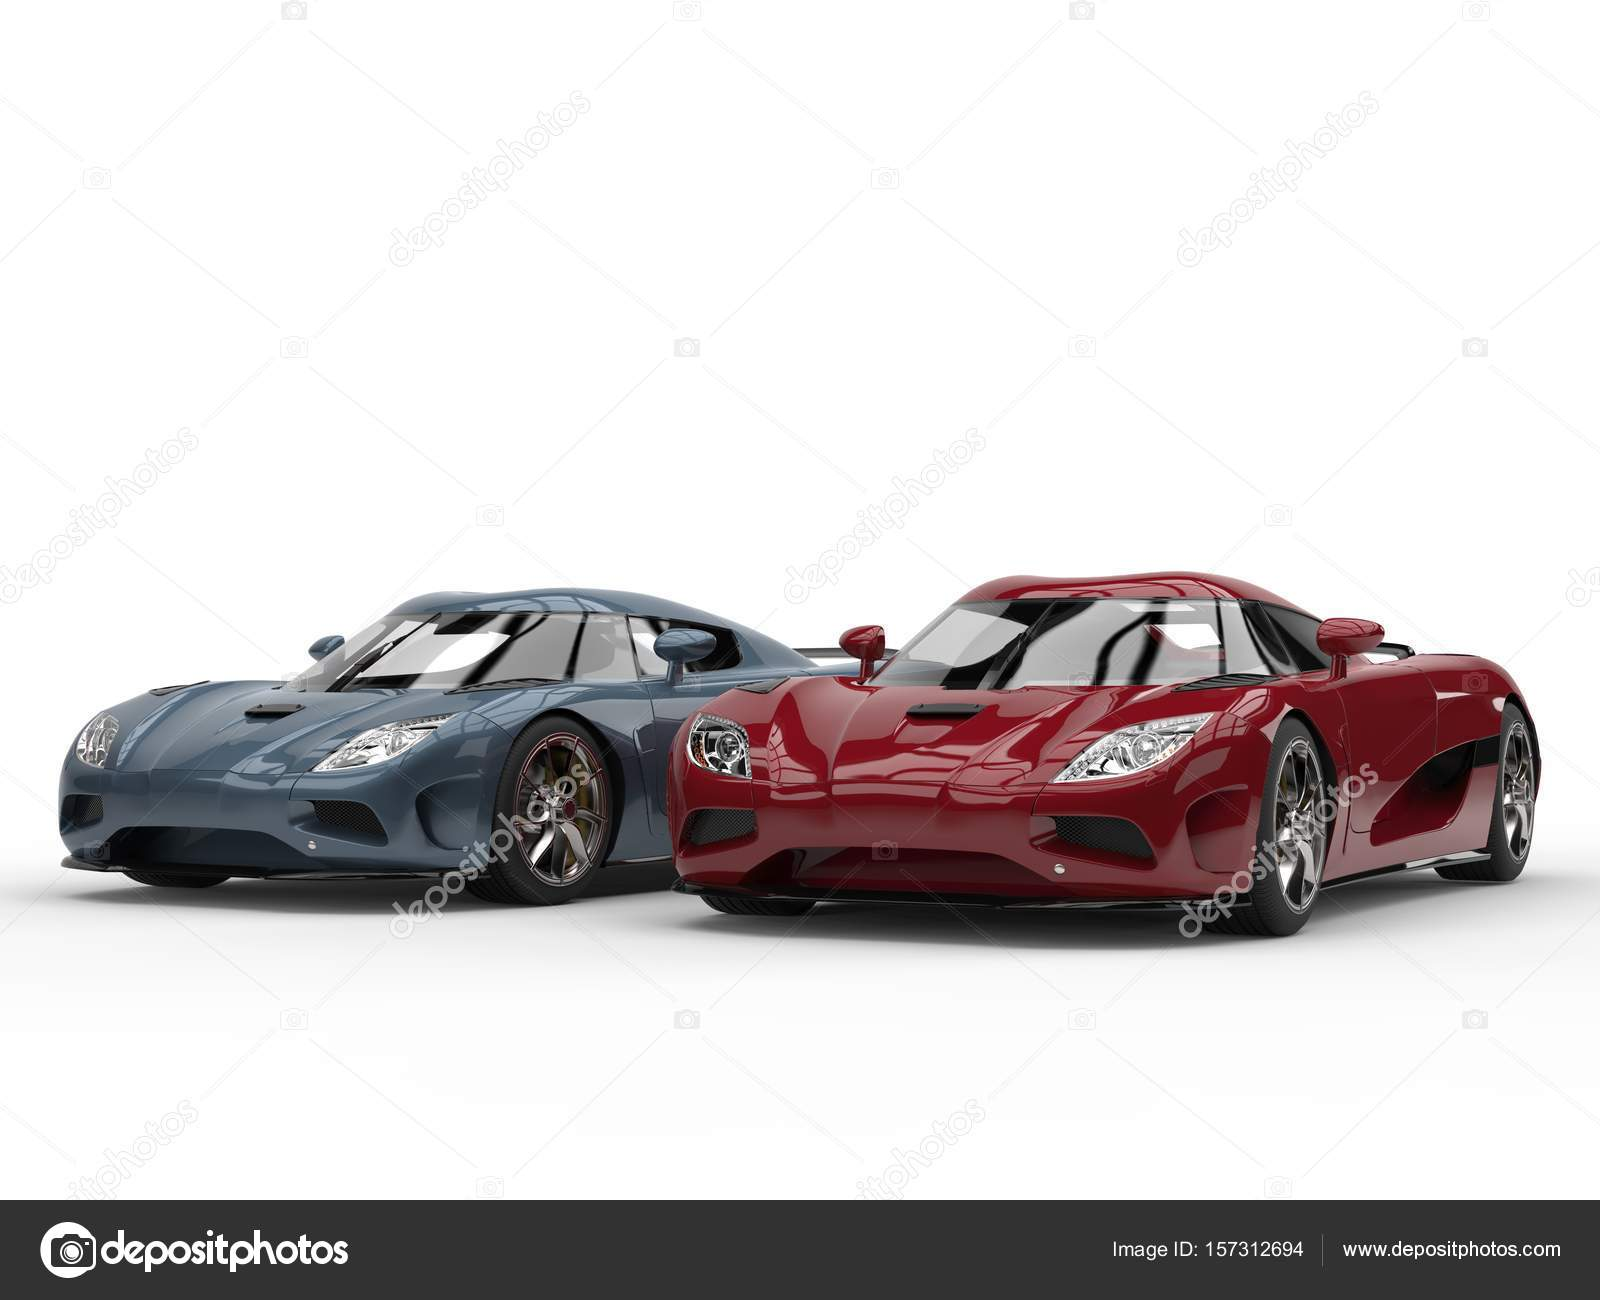 Cool Concept Sports Cars In Metallic Cherry Red And Steel Blue